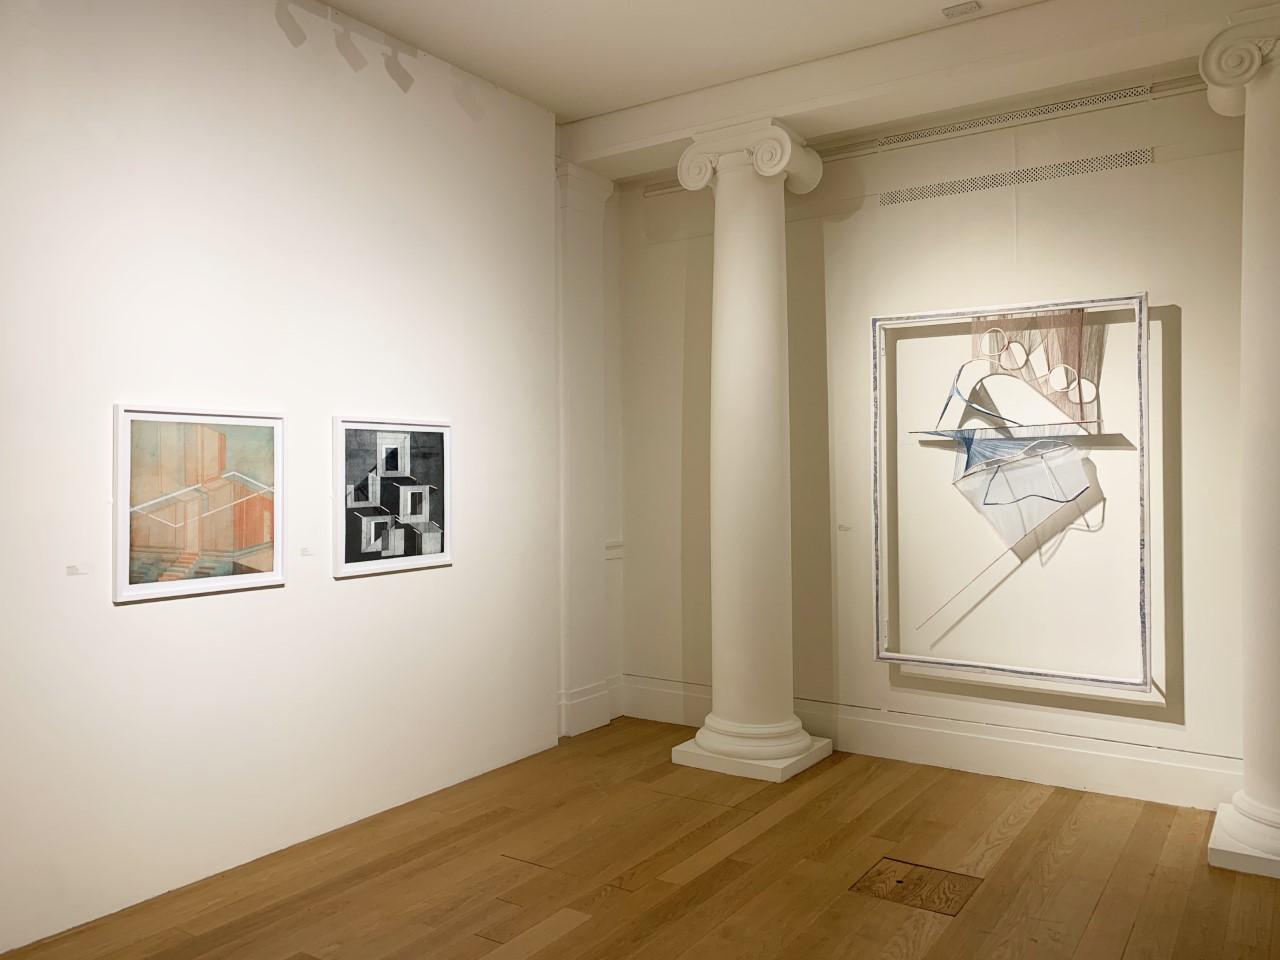 Reduct: Abstraction and Geometry in Scottish Art - Royal Scottish Academy